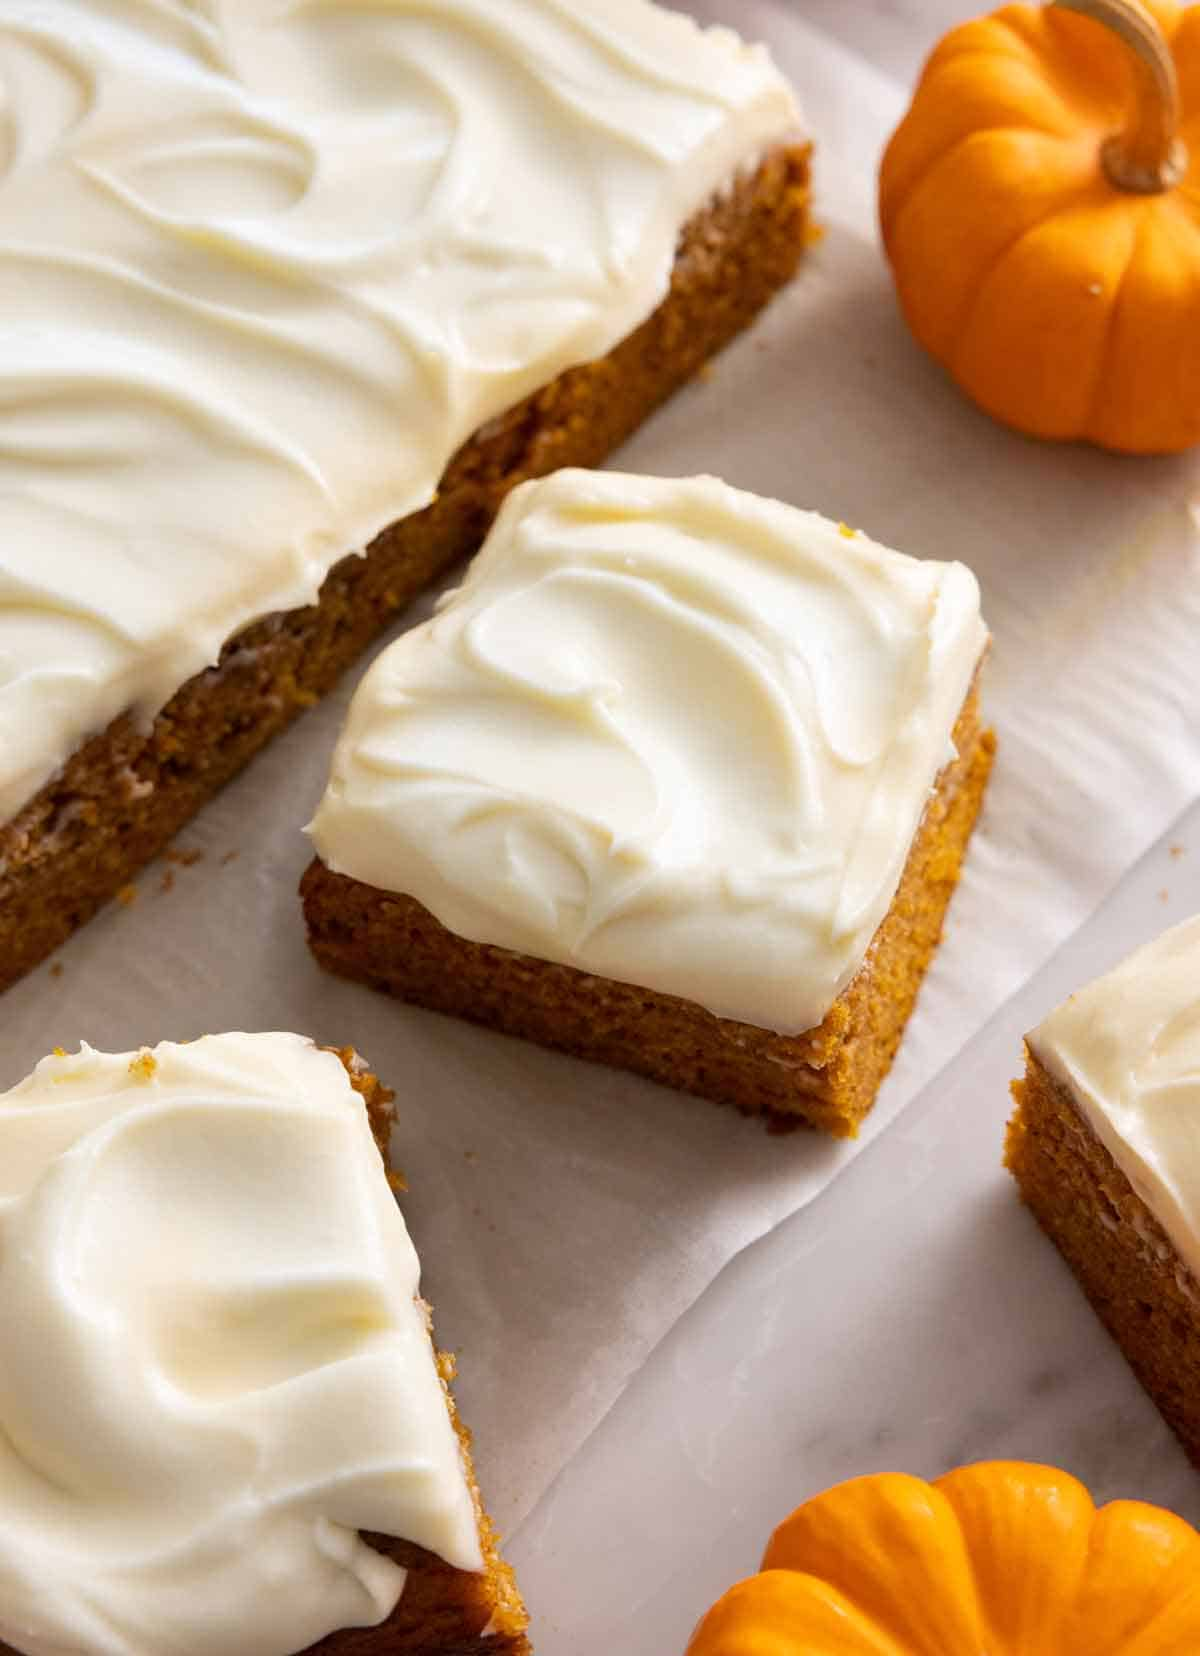 A pumpkin cake with 3 square slices cut and set beside it.